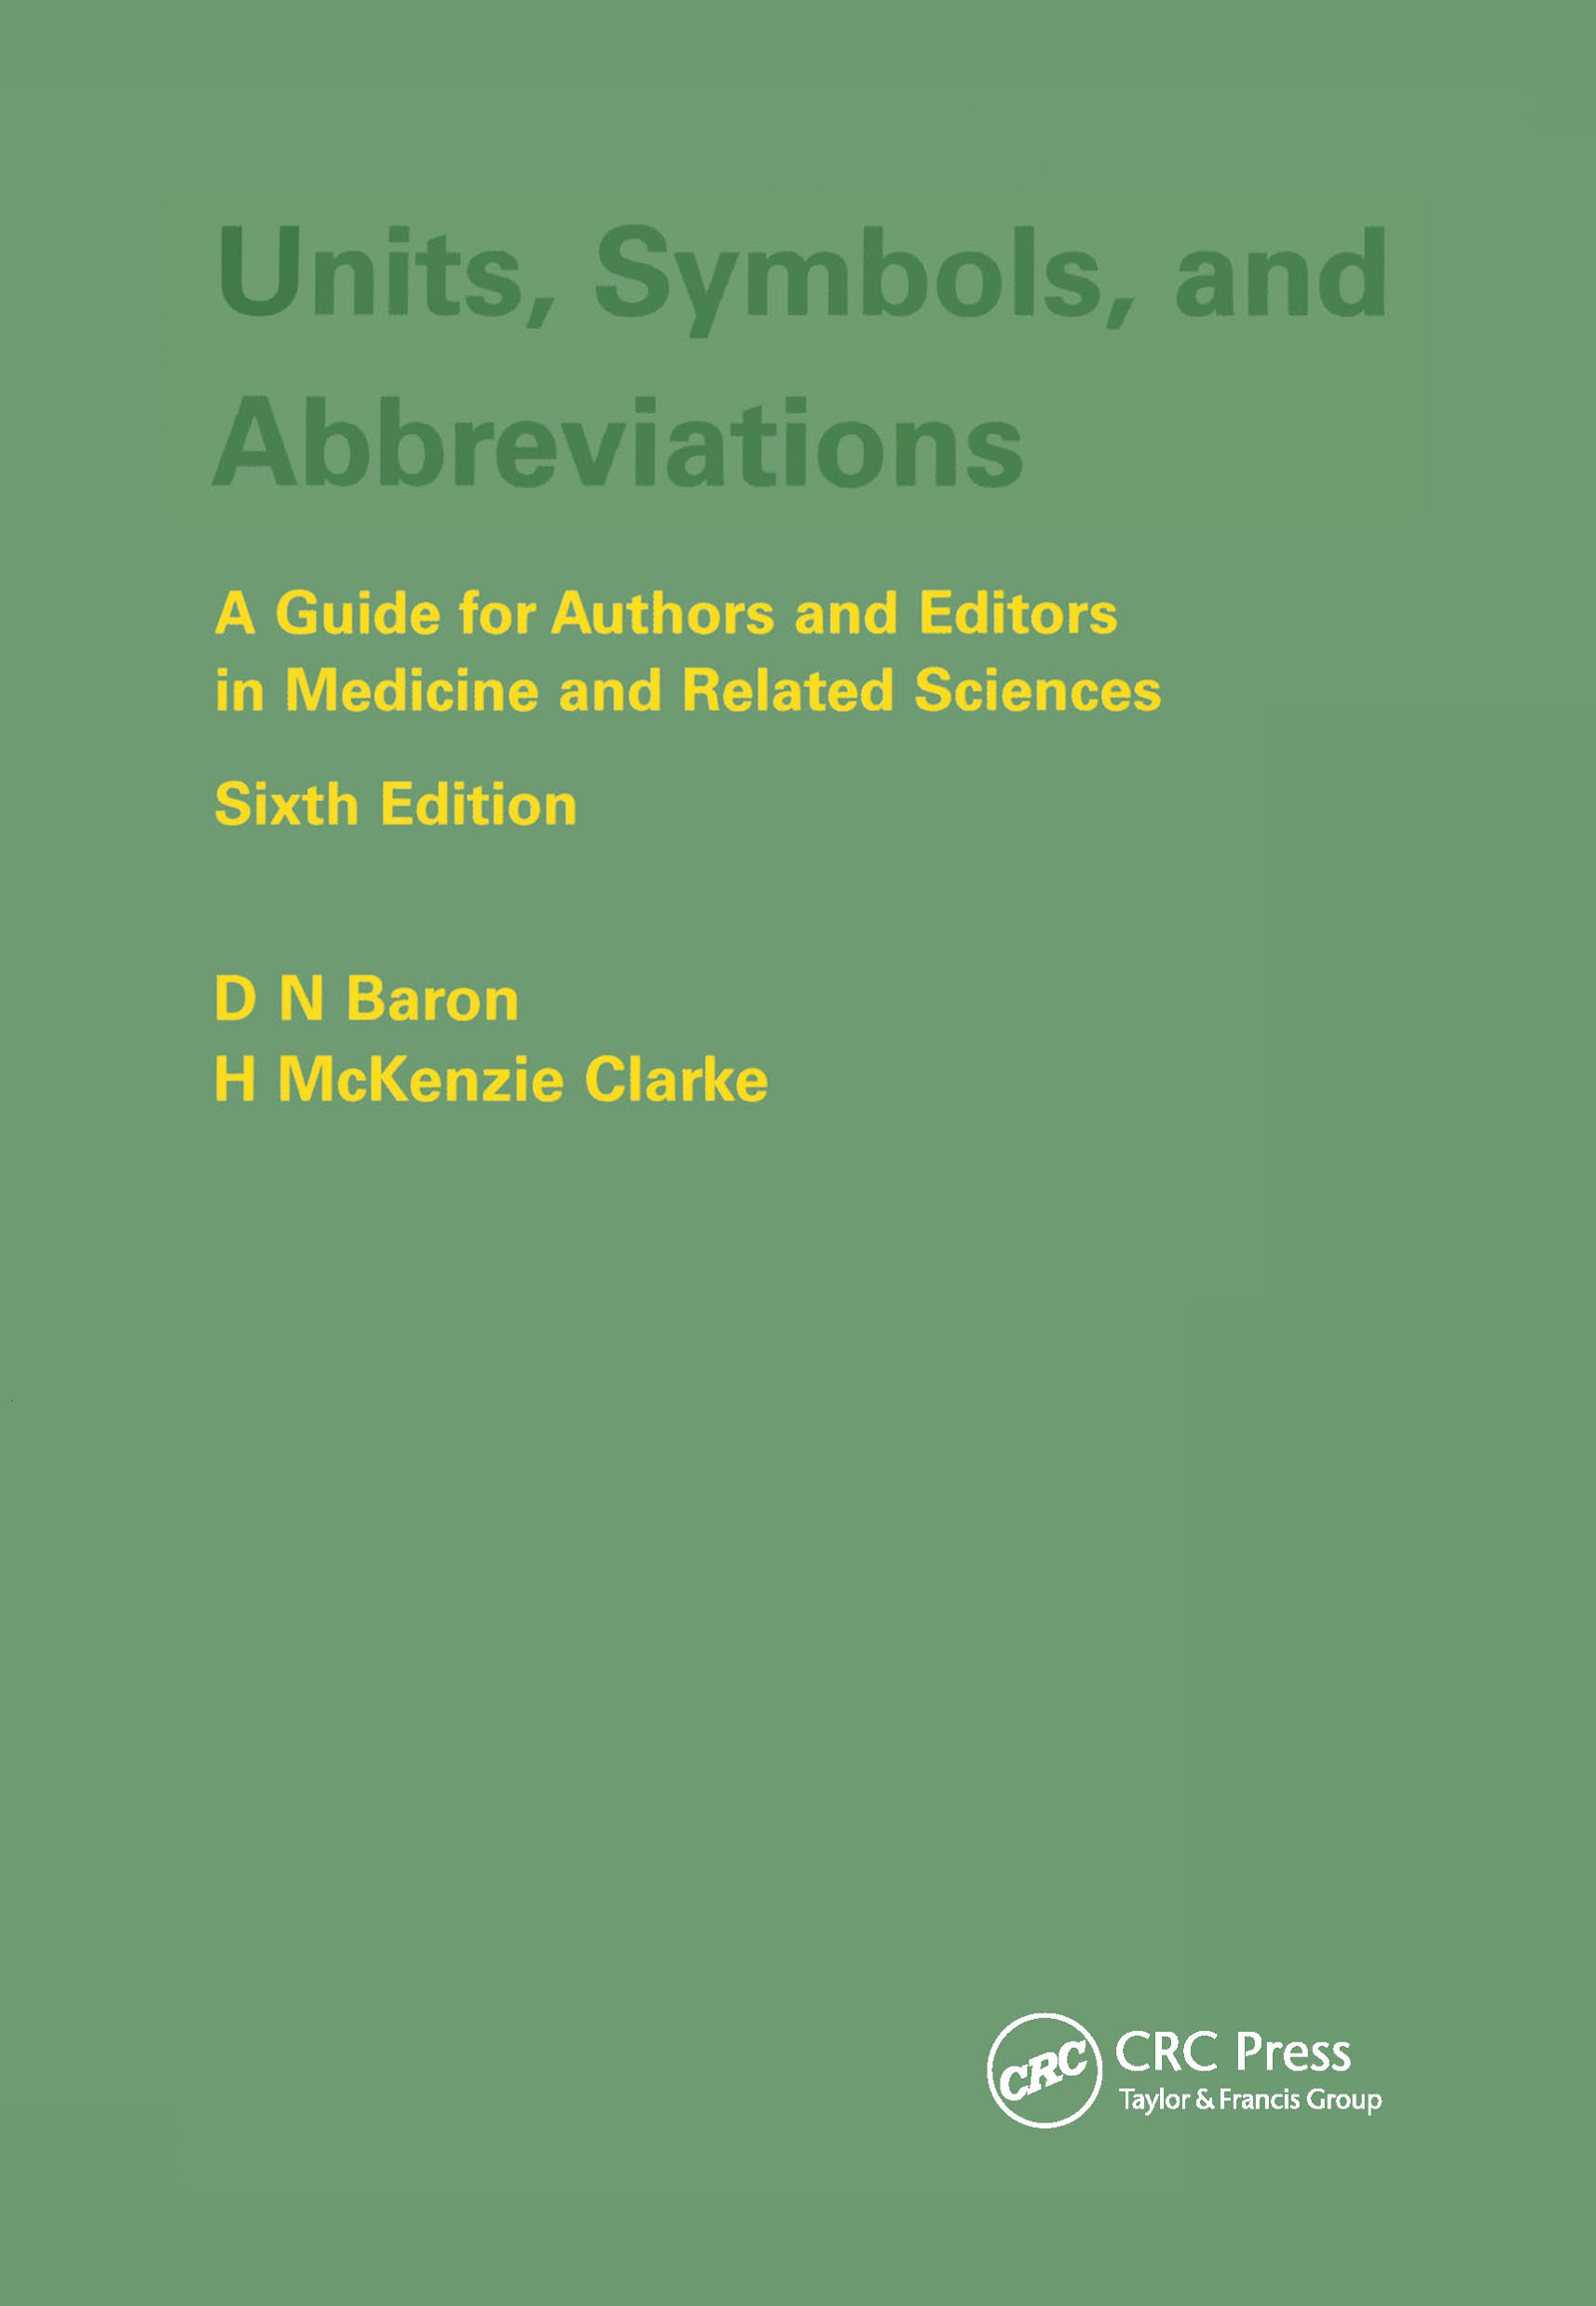 Units, Symbols, and Abbreviations: A Guide for Authors and Editors in Medicine and Related Sciences, Sixth edition: 6th Edition (Paperback) book cover